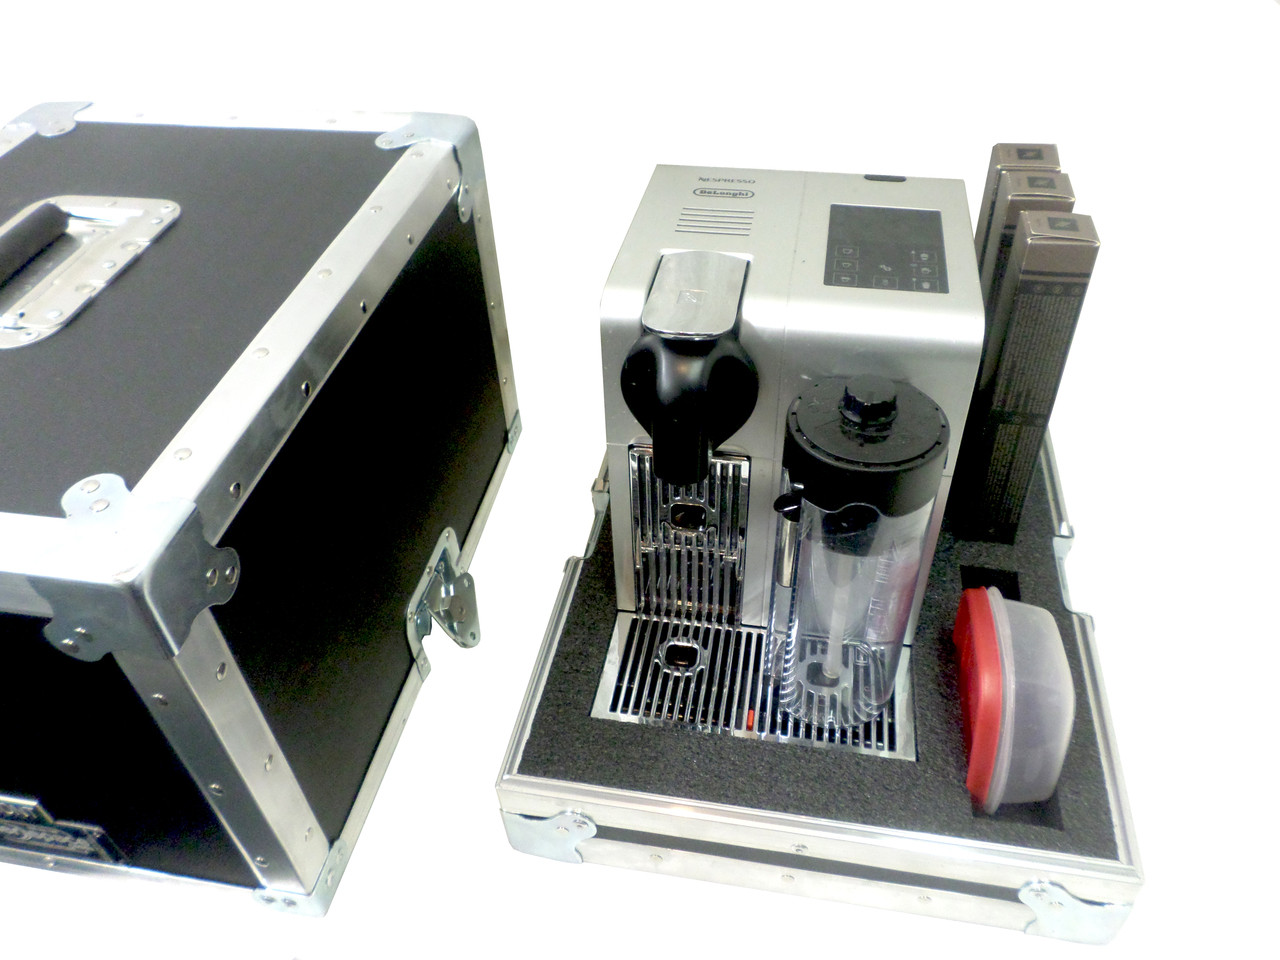 Nespresso Delonghi Lattissima Pro with Accessories